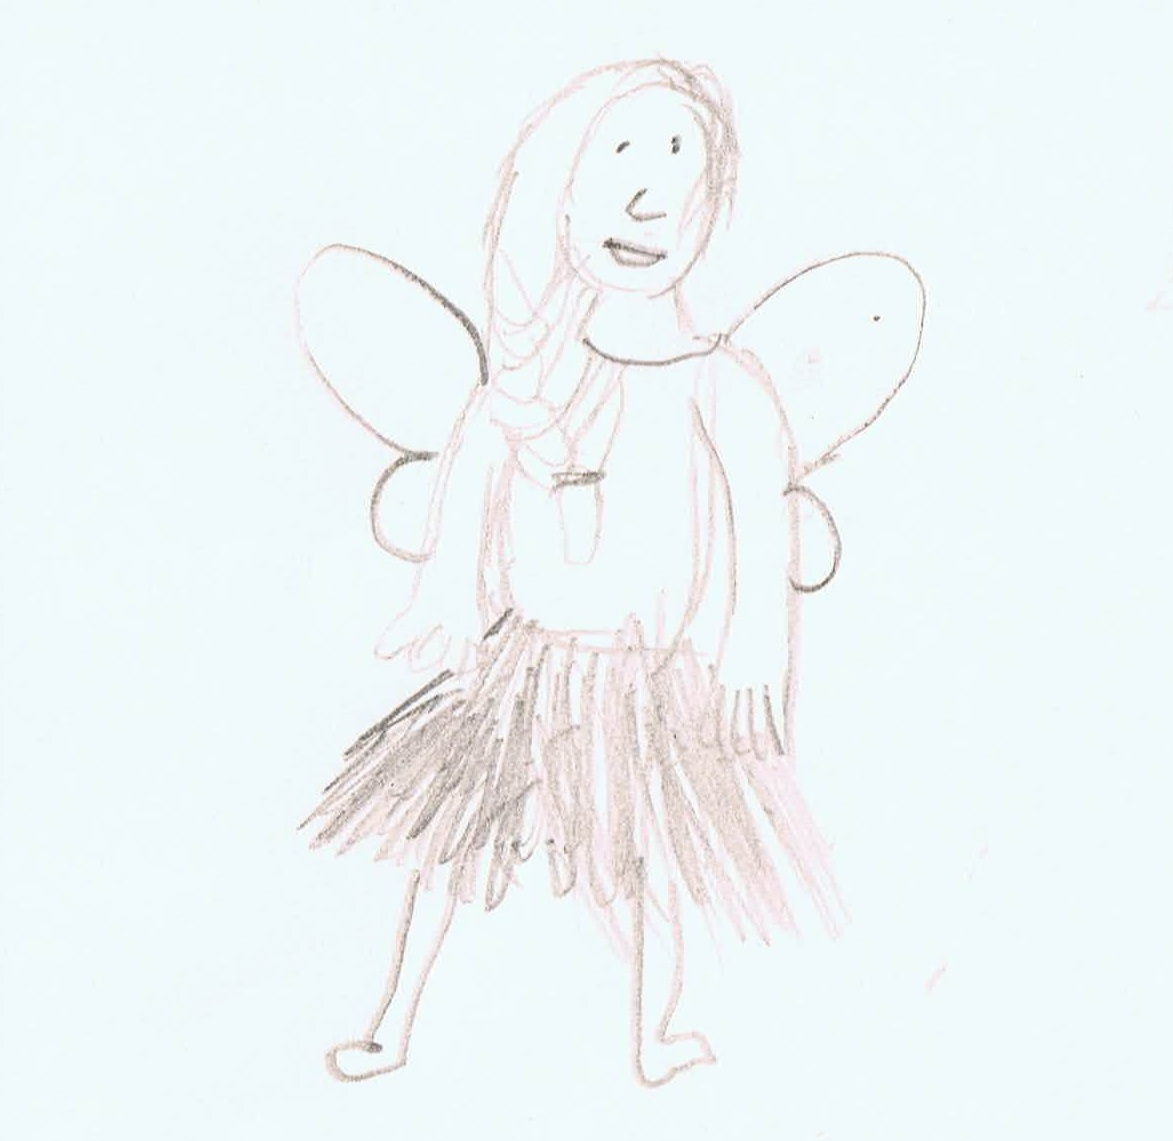 Image: child's drawing of a fairy